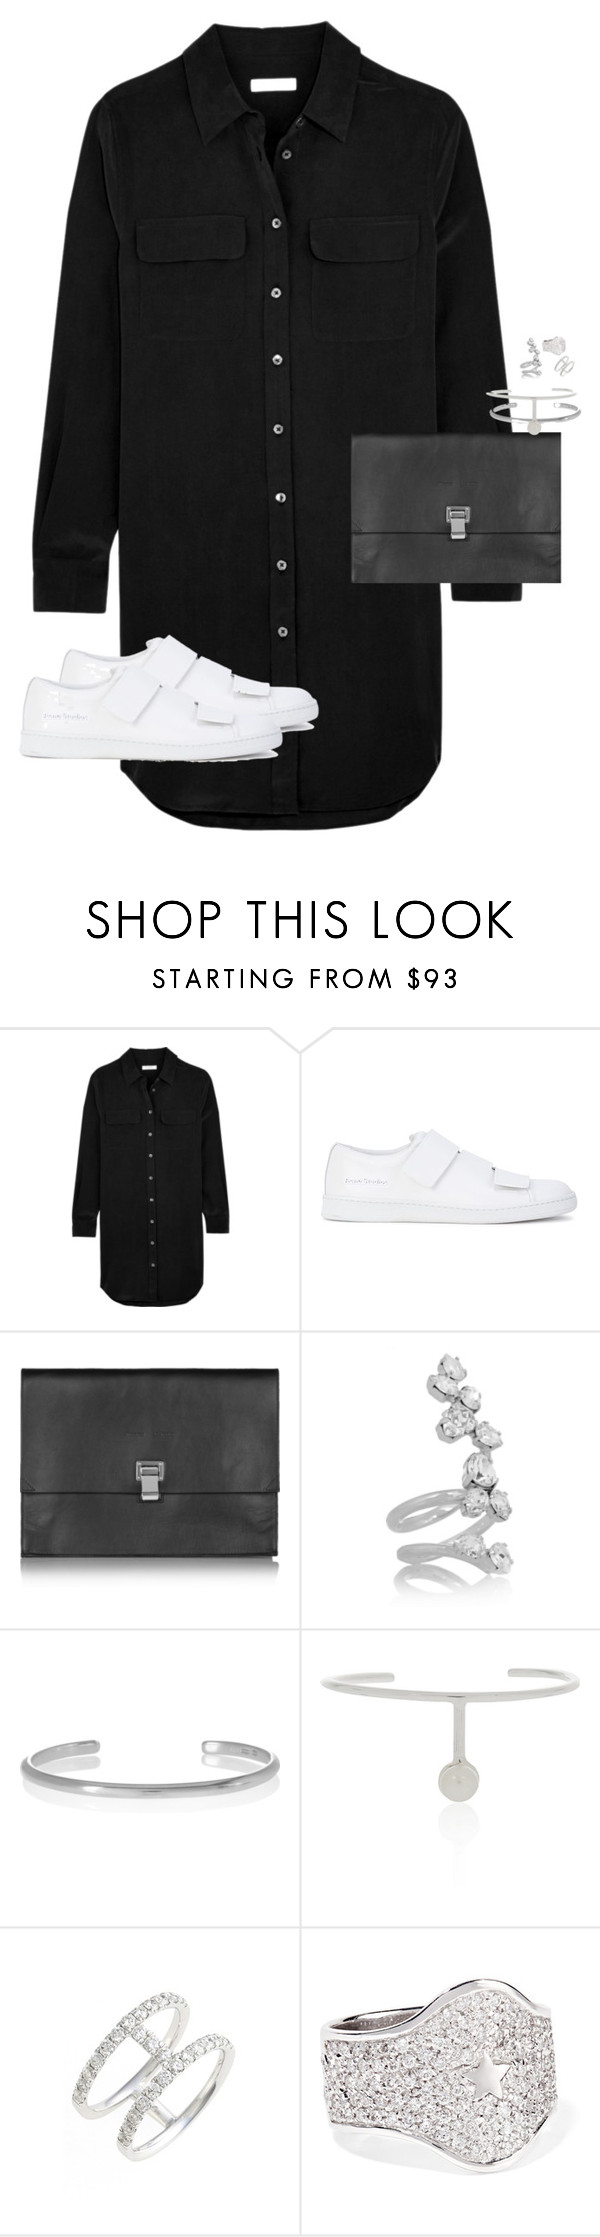 """Untitled #12118"" by alexsrogers ❤ liked on Polyvore featuring Equipment, Acne Studios, Proenza Schouler, Ryan Storer, Maison Margiela, Cornelia Webb, Bony Levy and Carolina Bucci"